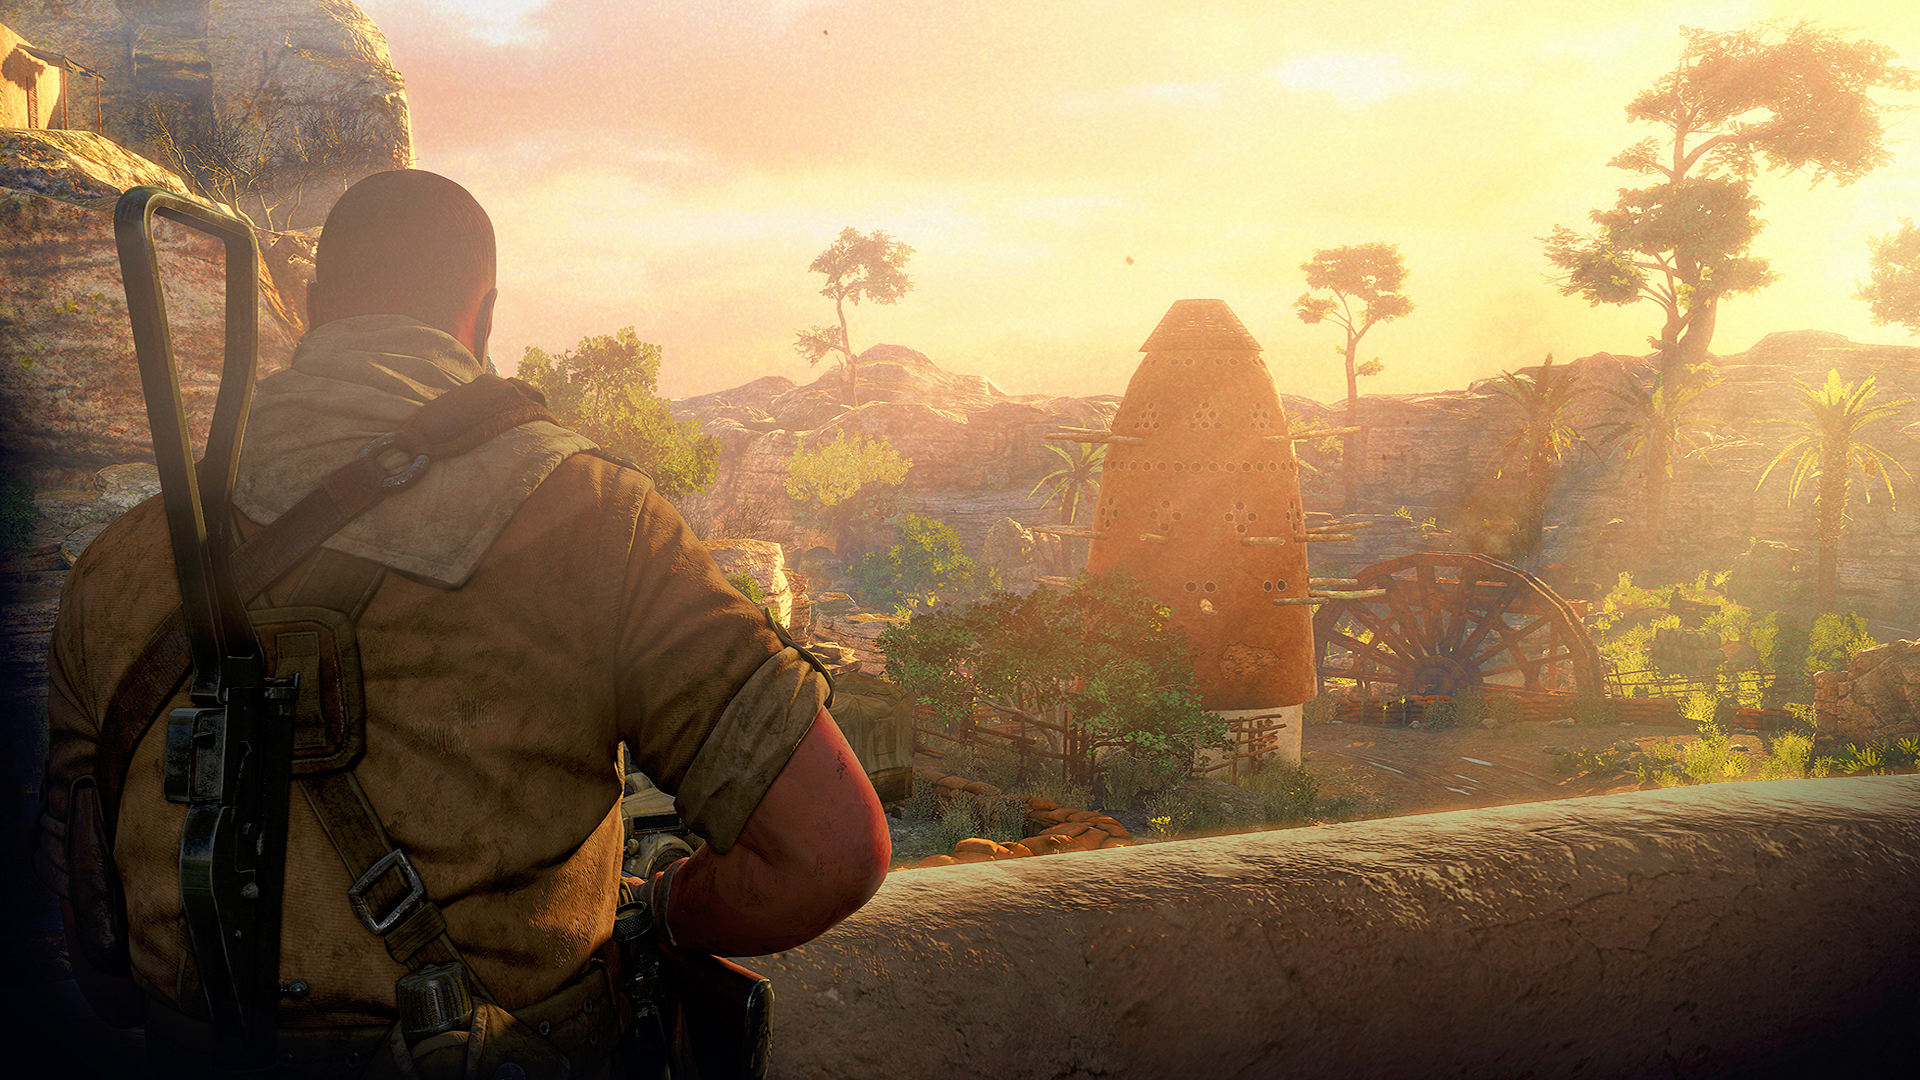 Sniper Elite 3 HD Wallpapers and Background Images   stmednet 1920x1080